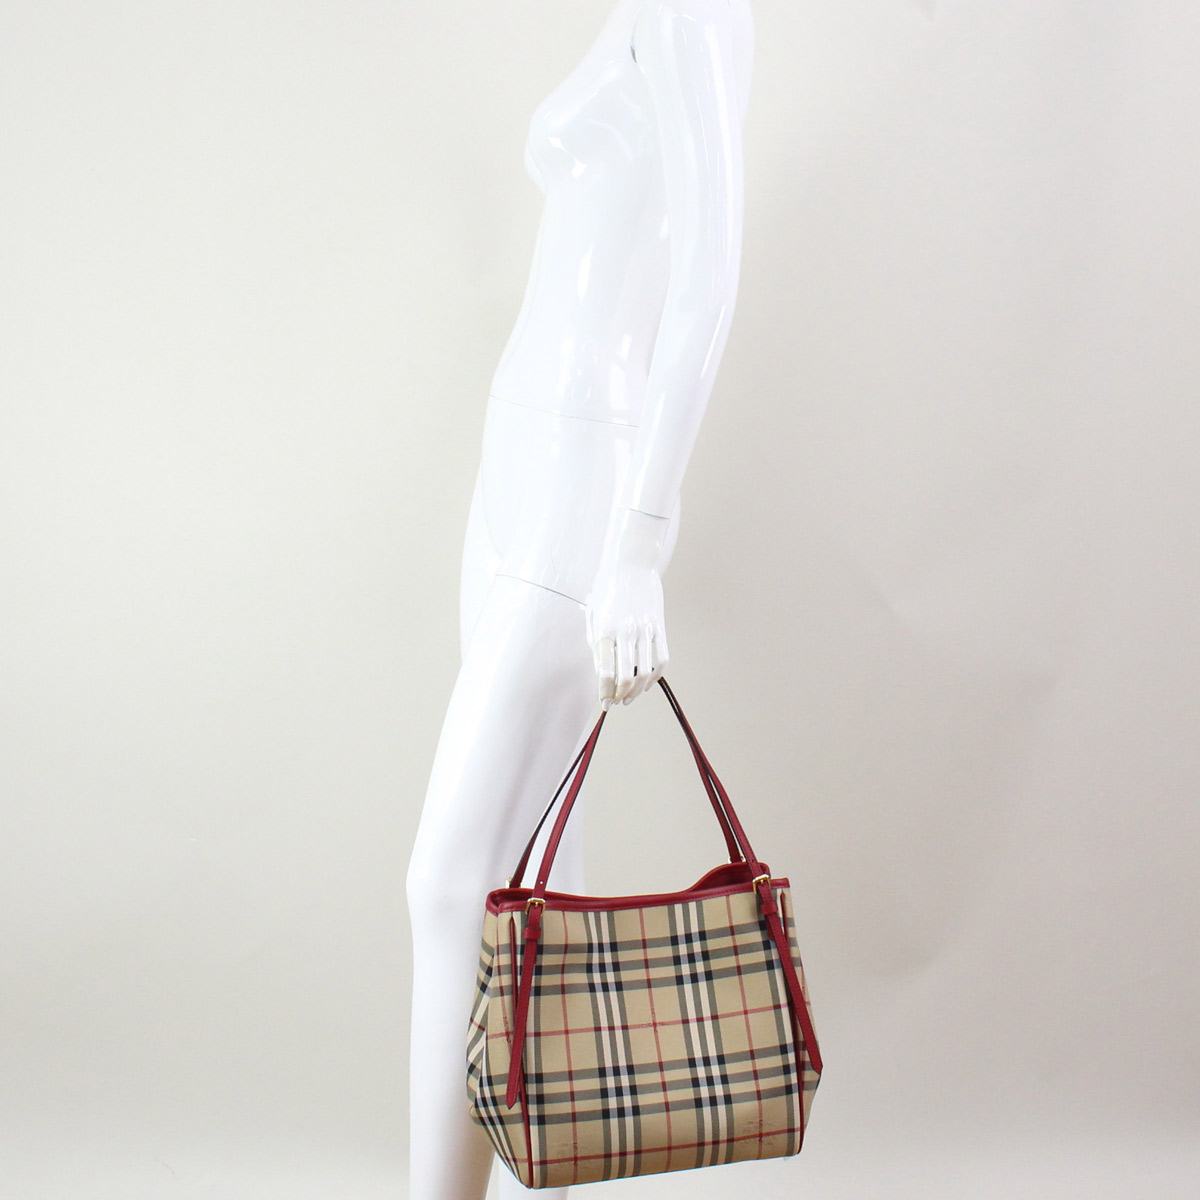 d69e108c8289 Bighit The total brand wholesale  Burberry (BURBERRY) SM CANTER ...